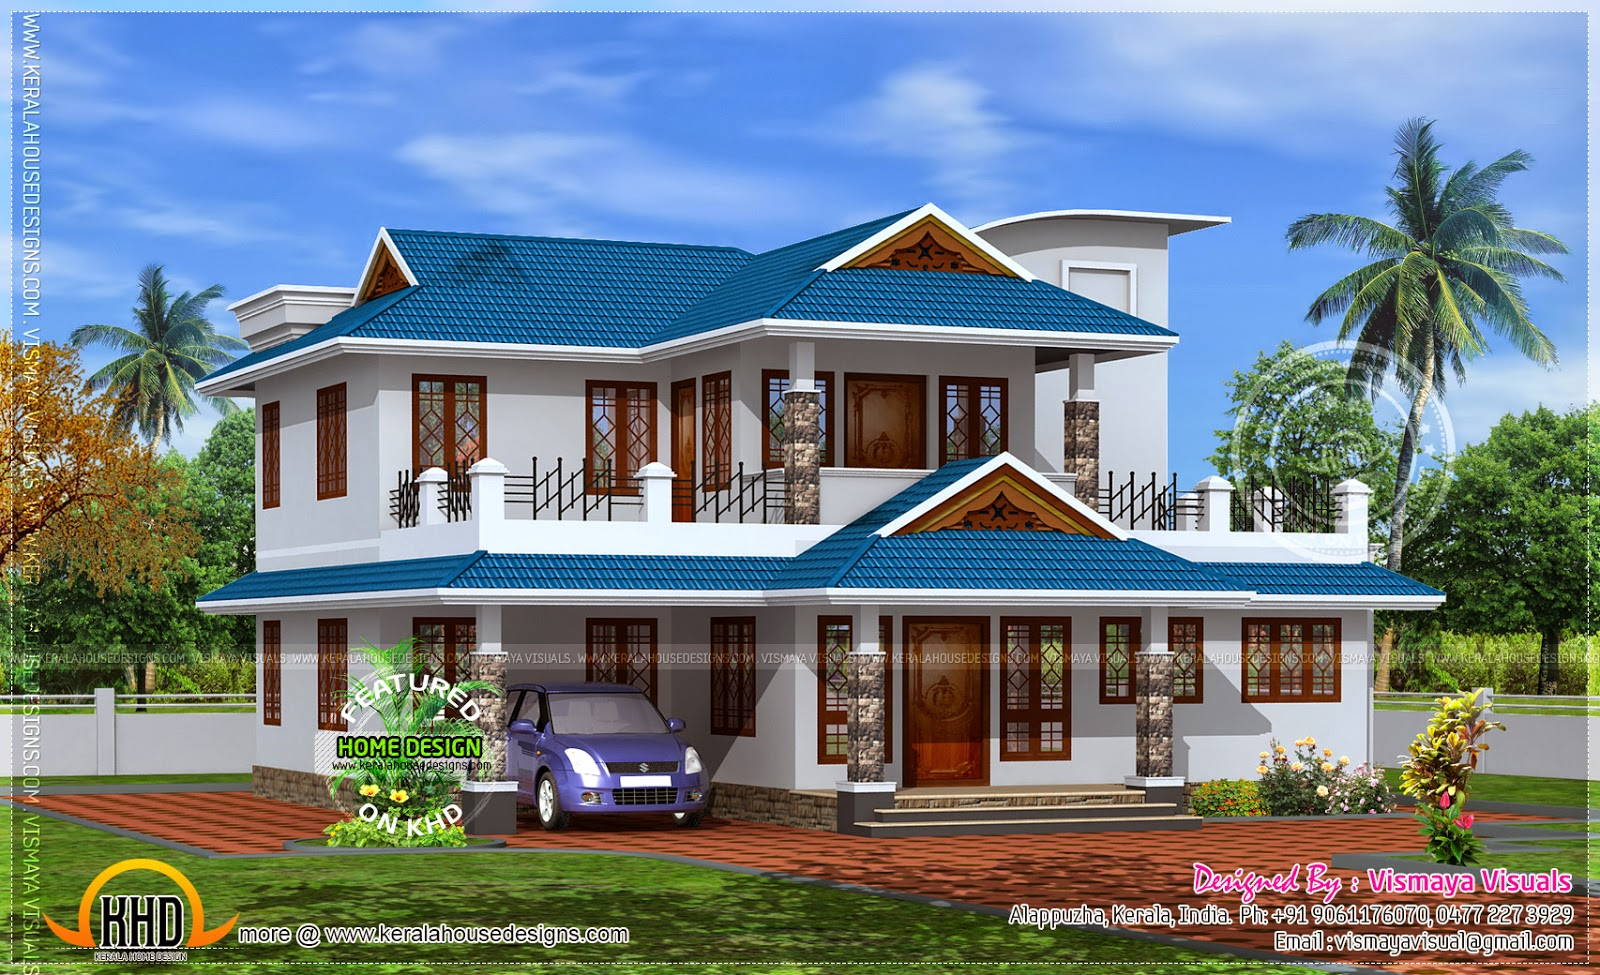 2350 sq feet home model in kerala kerala home design and floor plans. Black Bedroom Furniture Sets. Home Design Ideas